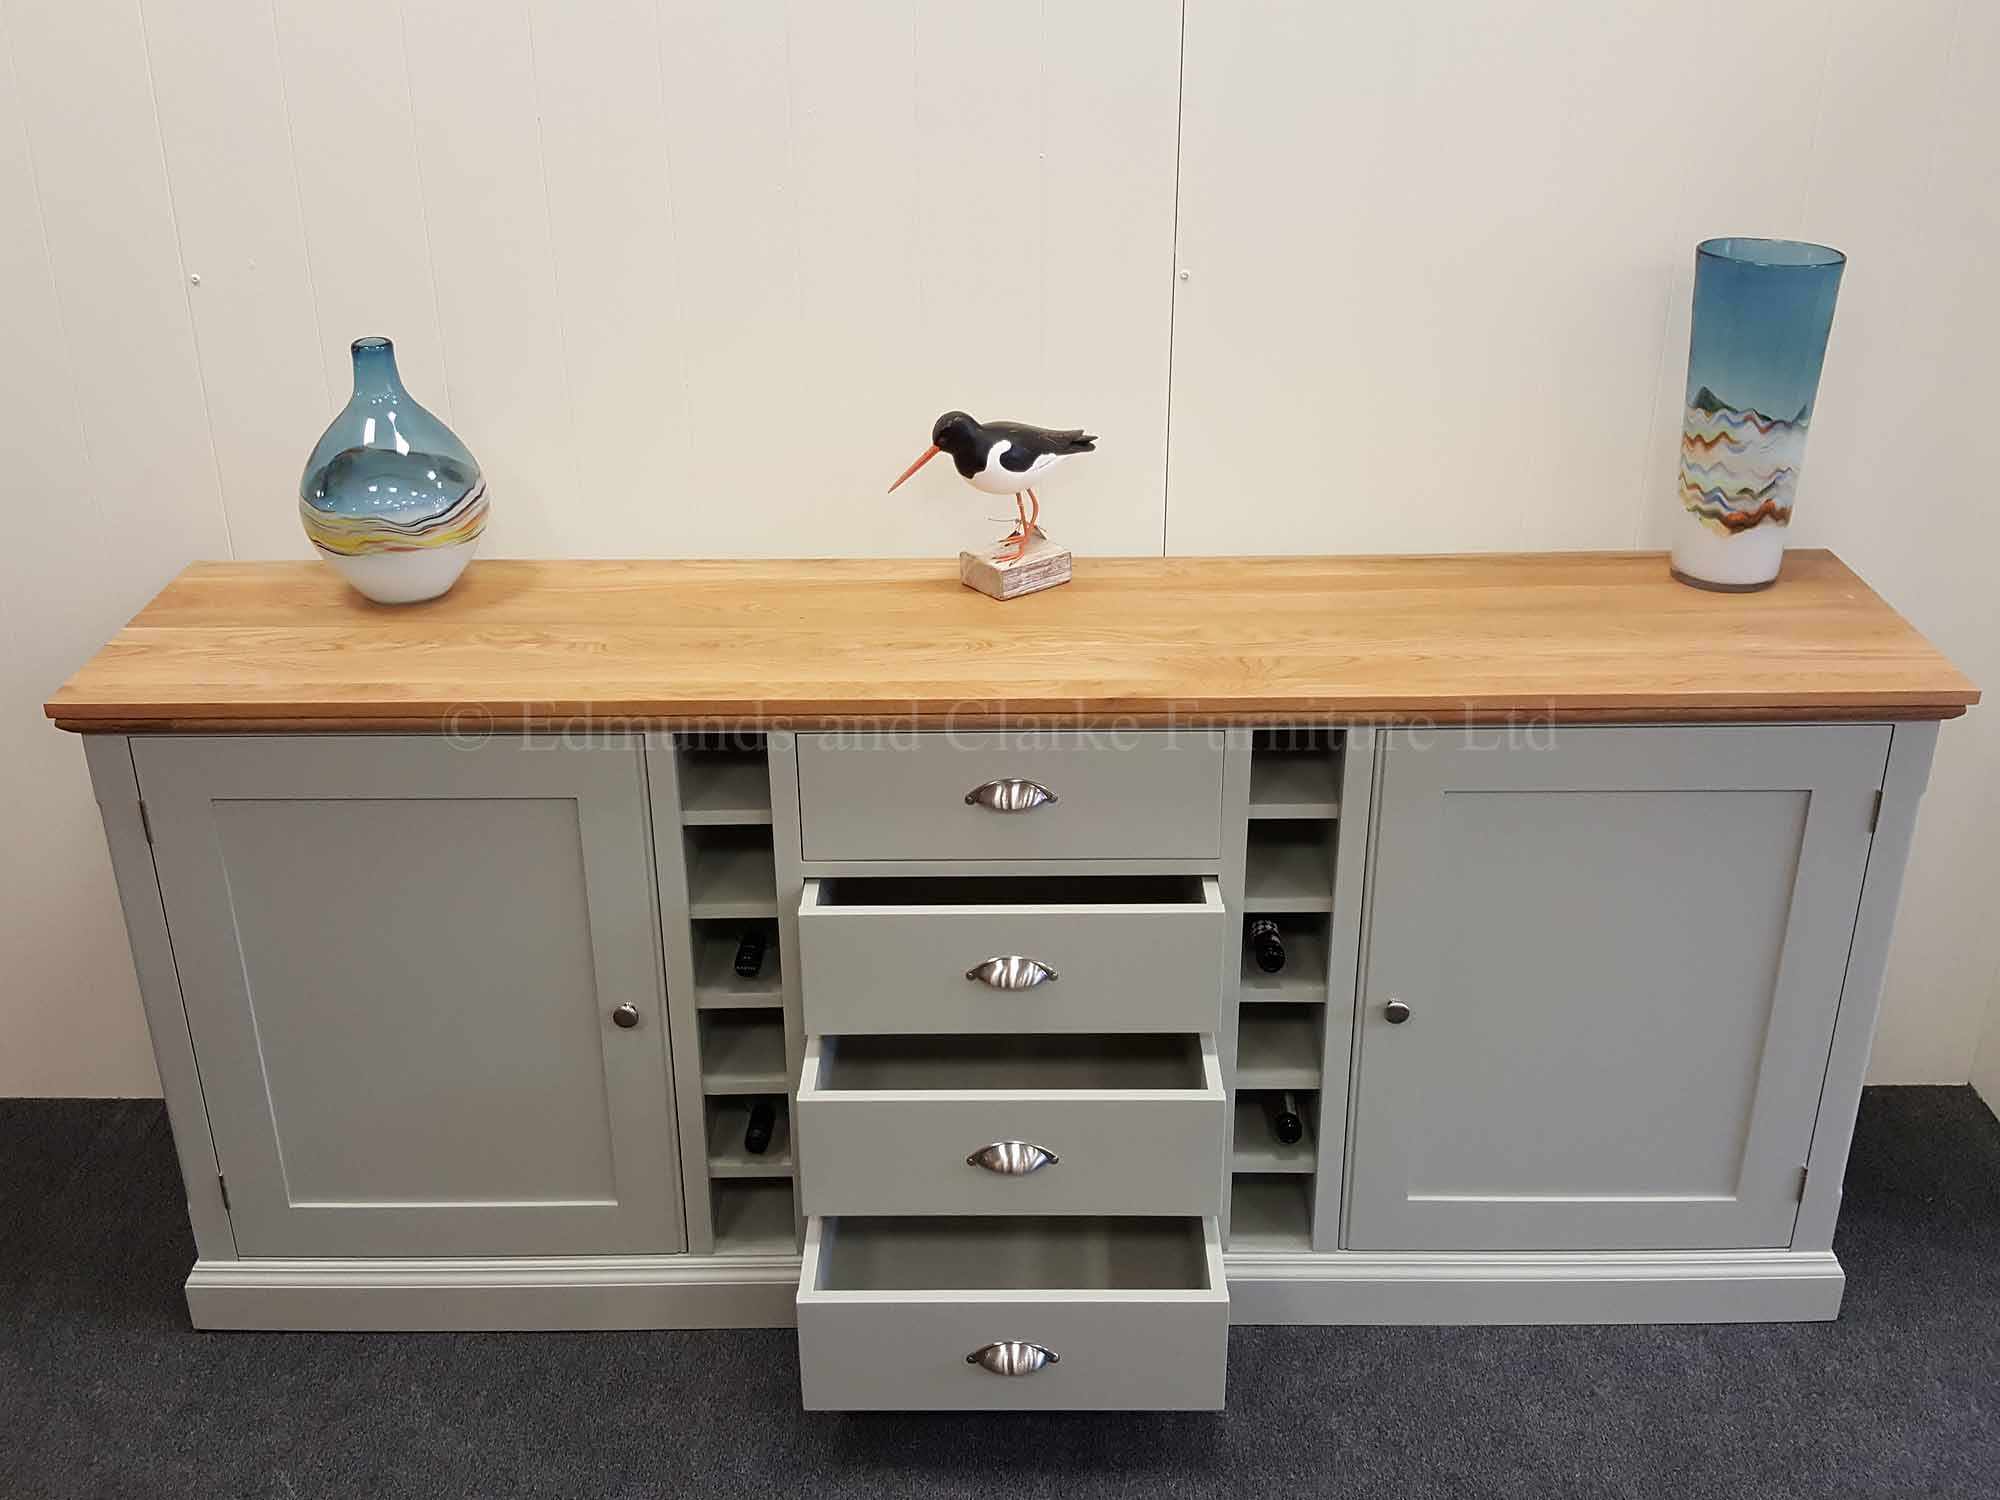 7' painted sideboard oak top large cupboards and 12 bottle wine rack storage